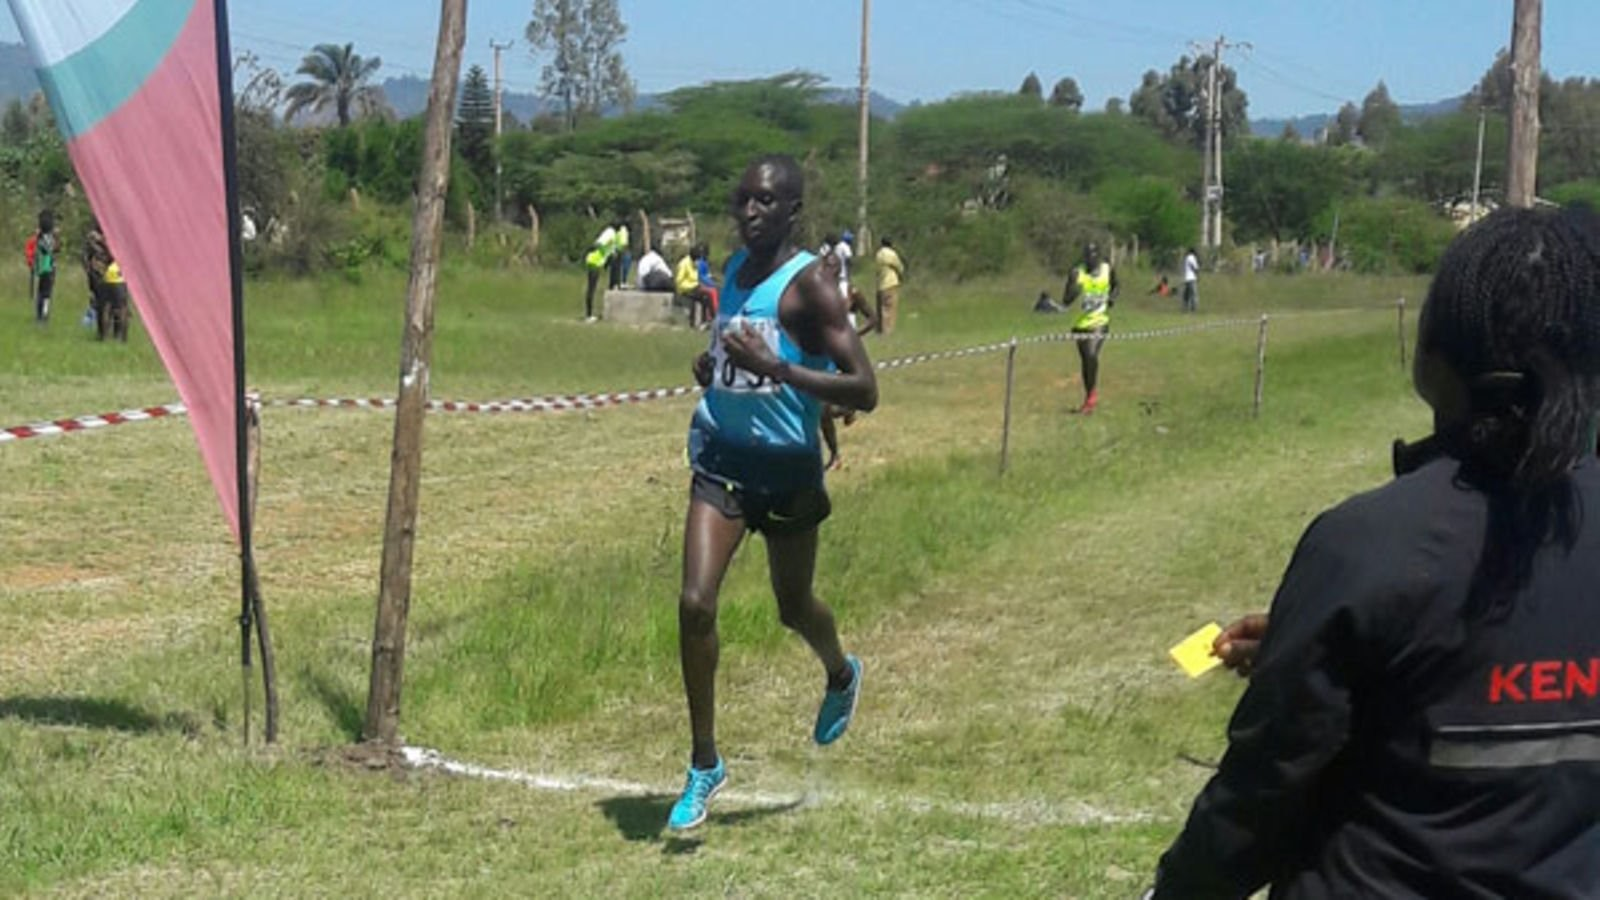 Charles Yosei and Sheila Chelangat are keen to run at both the World Cross Country Championships in Bathurst, Australia and Olympic Games in Tokyo next year